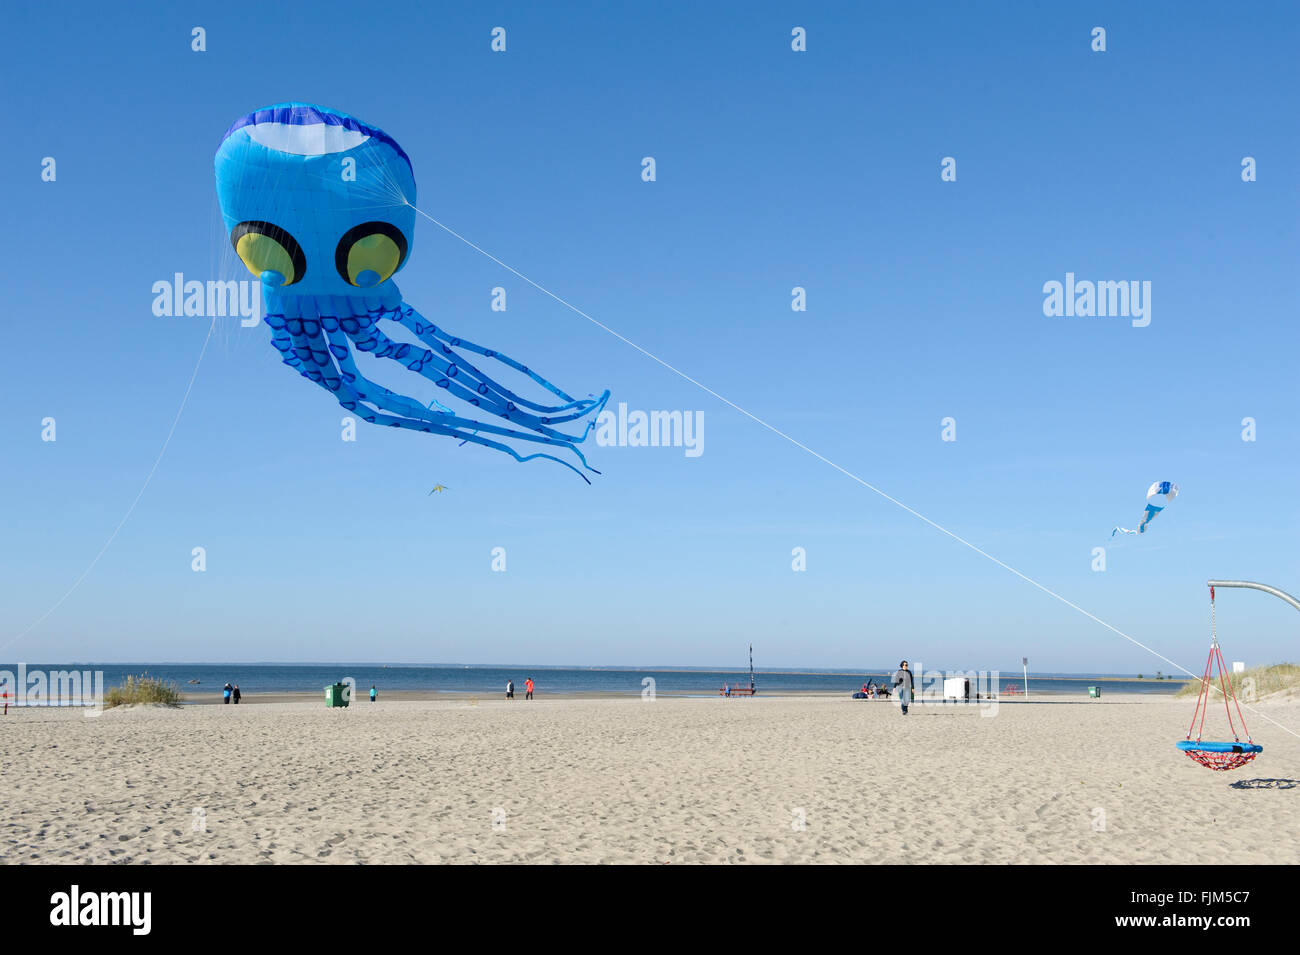 geography / travel, Estonia, Pärnu, beaches, kite in shape of an octopus, Additional-Rights-Clearance-Info - Stock Image